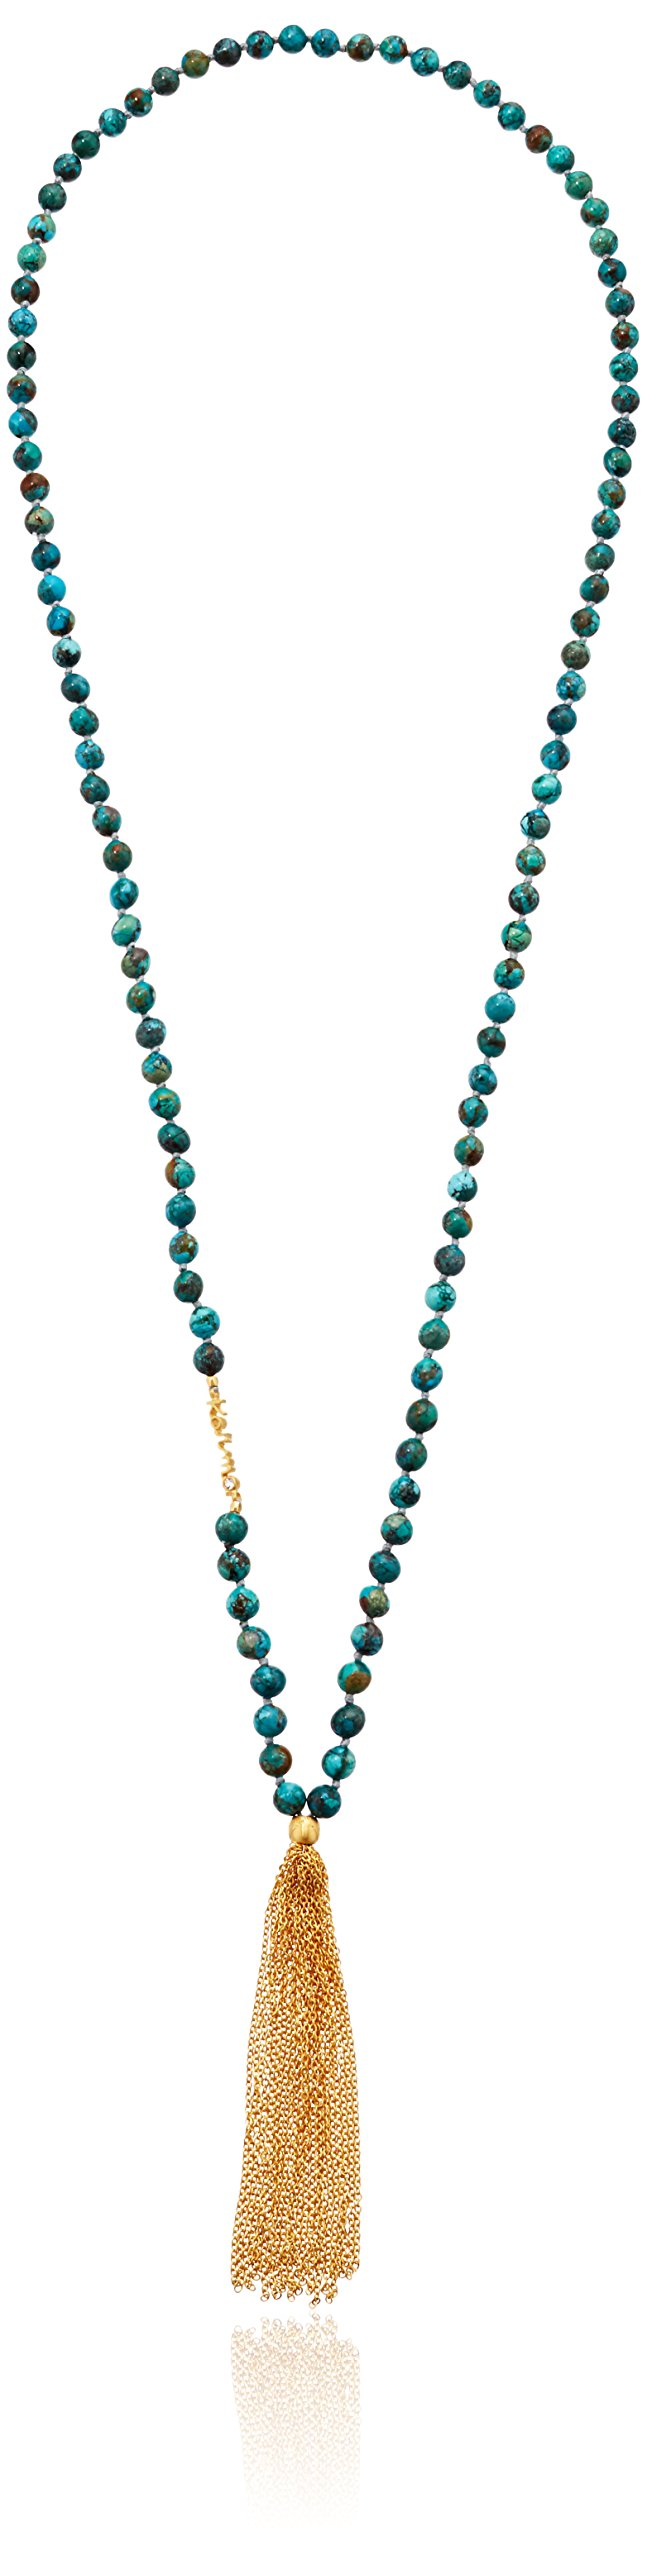 Satya Jewelry Words of Wisdom Turquoise Gold Plate Karma Chain Tassel Mala Strand Necklace, 32''